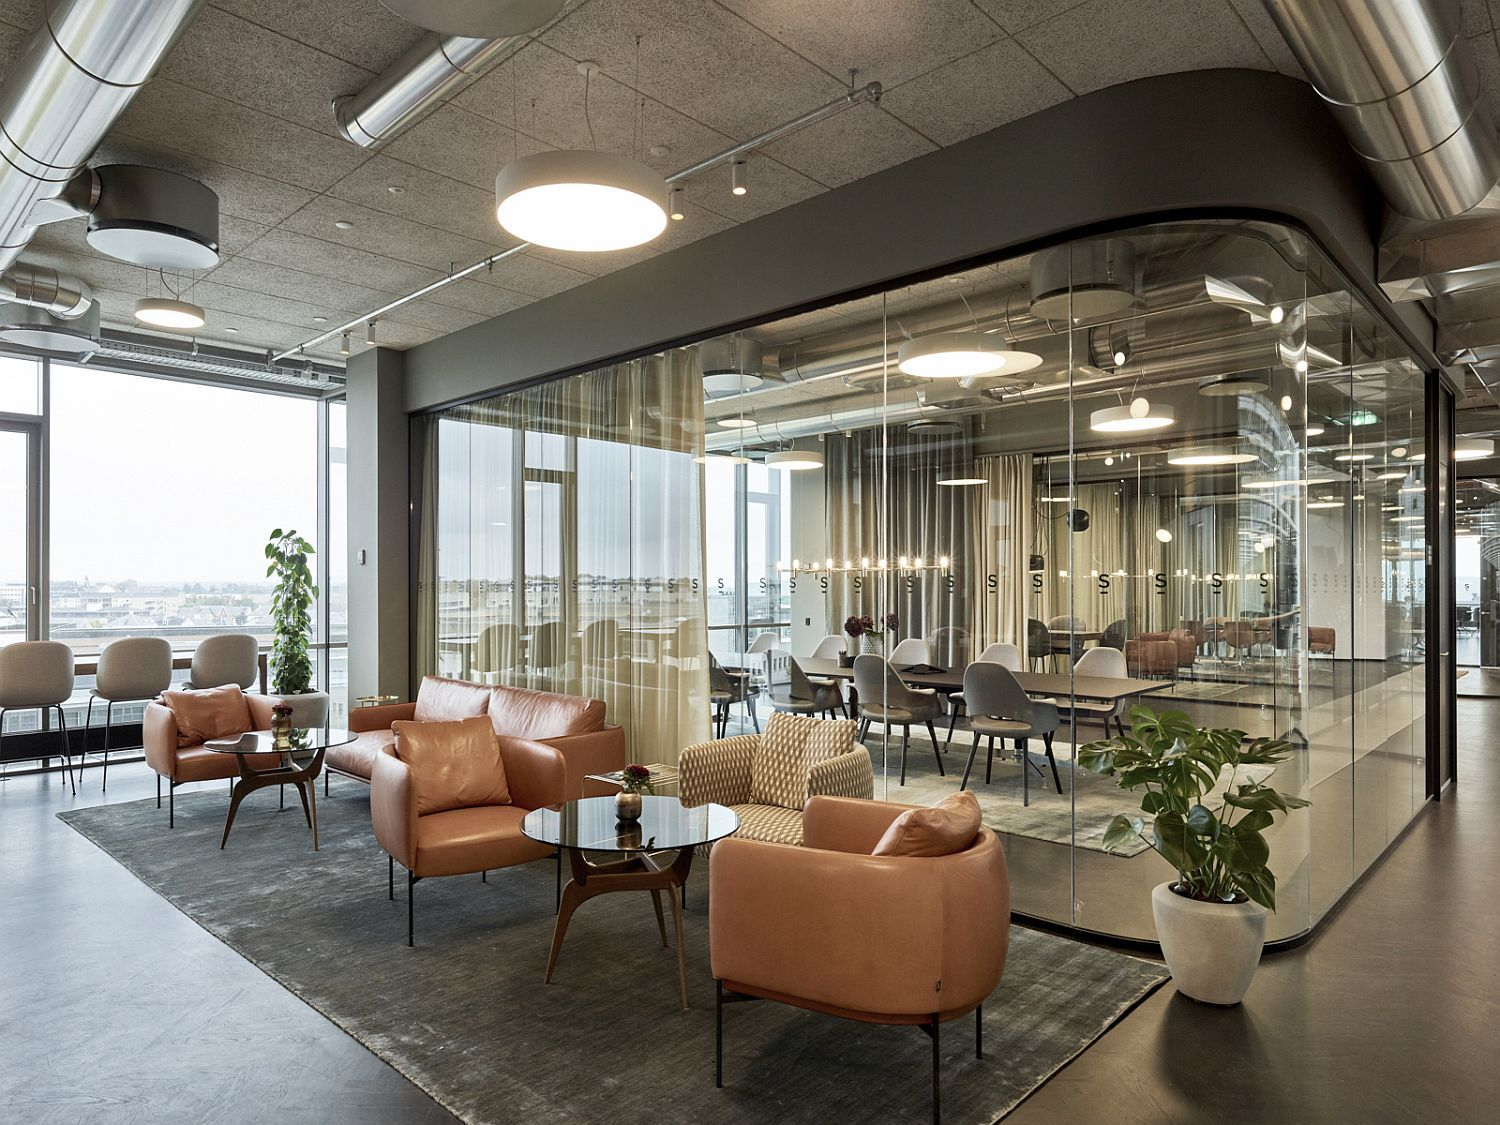 Modern Office Spaces Often Lack Character And Personality With Polished Surfaces Creating An Im Modern Office Space Modern Office Design Office Interior Design